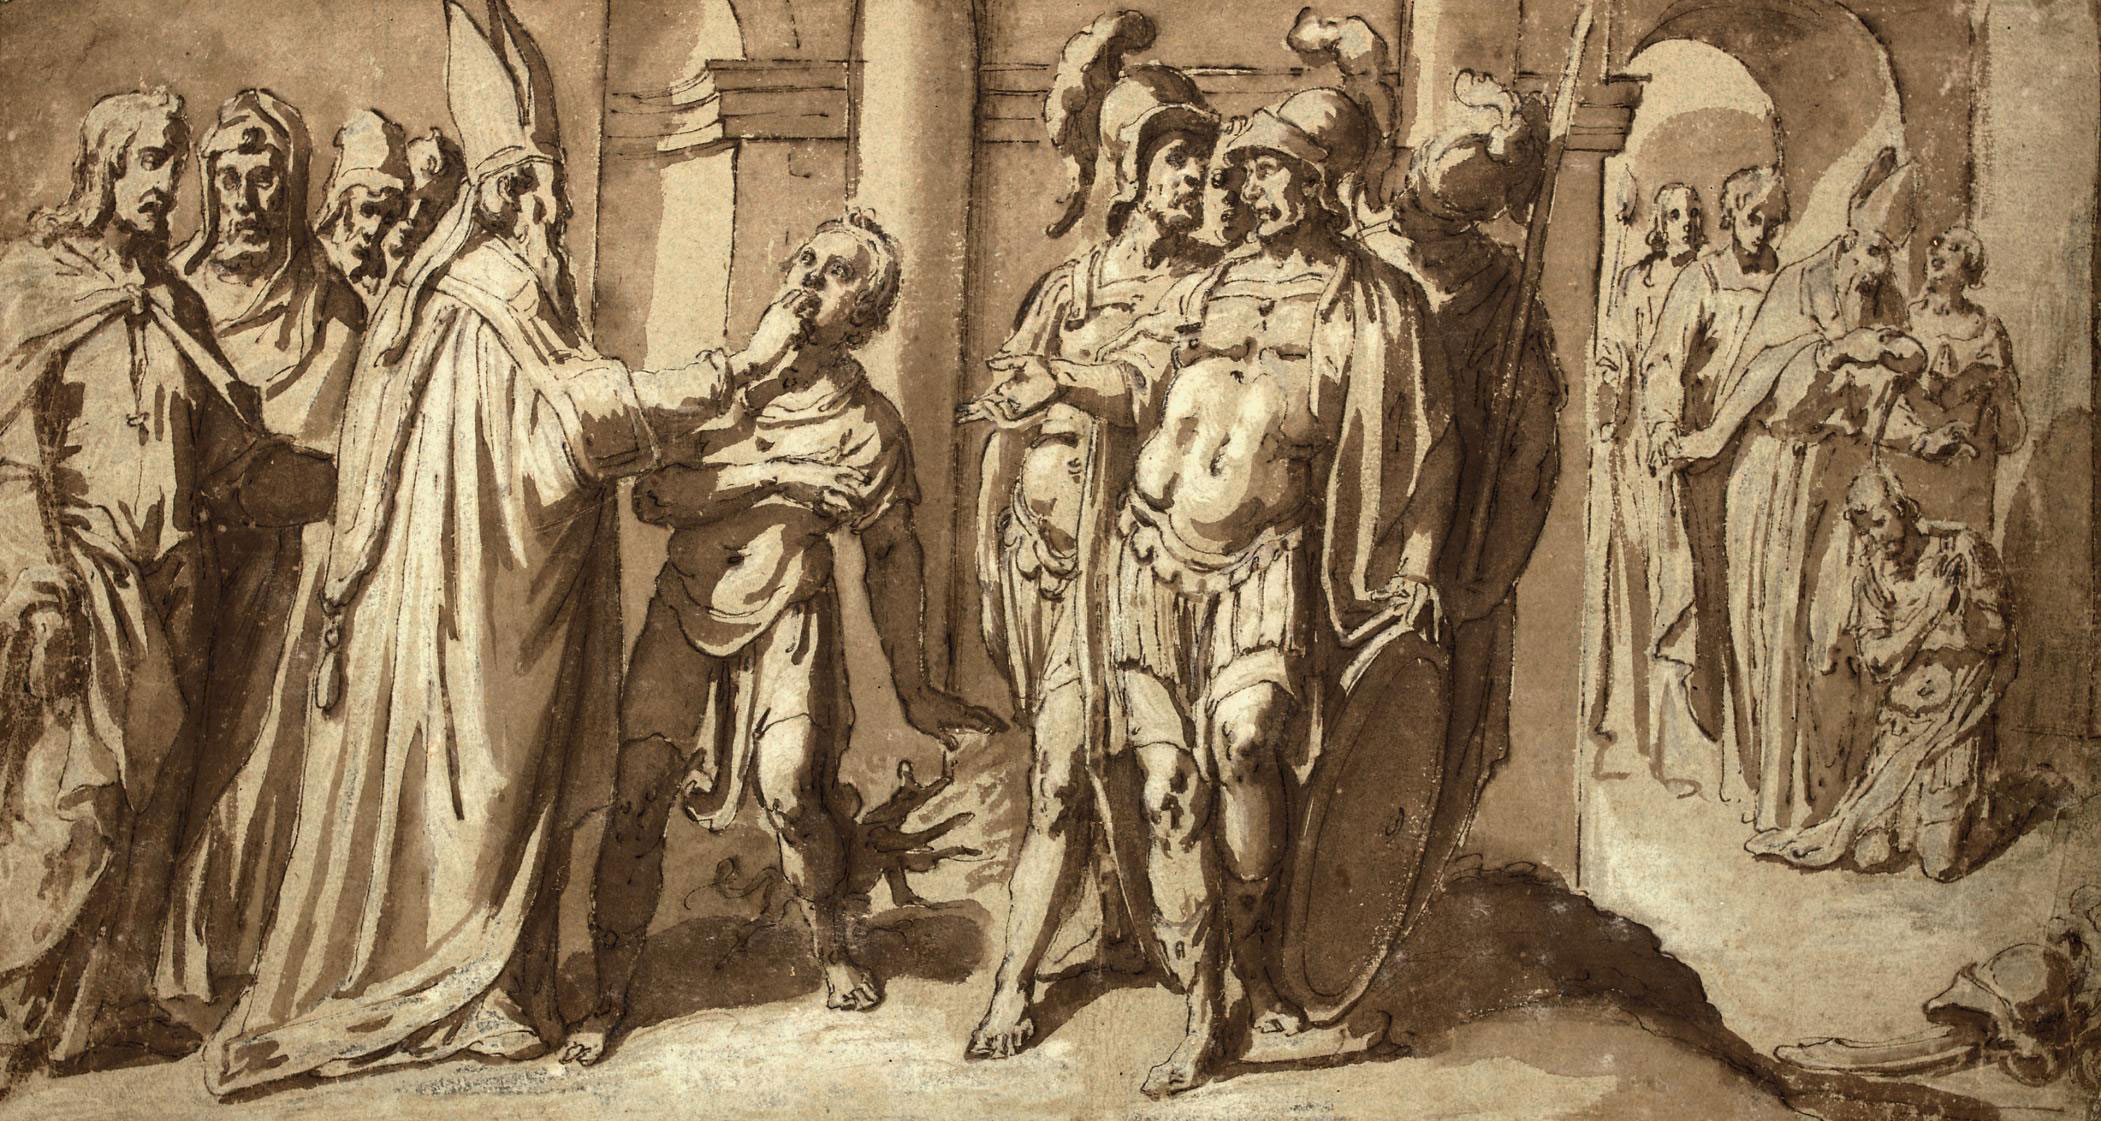 A bishop saint exorcising a youth and baptising a pagan soldier